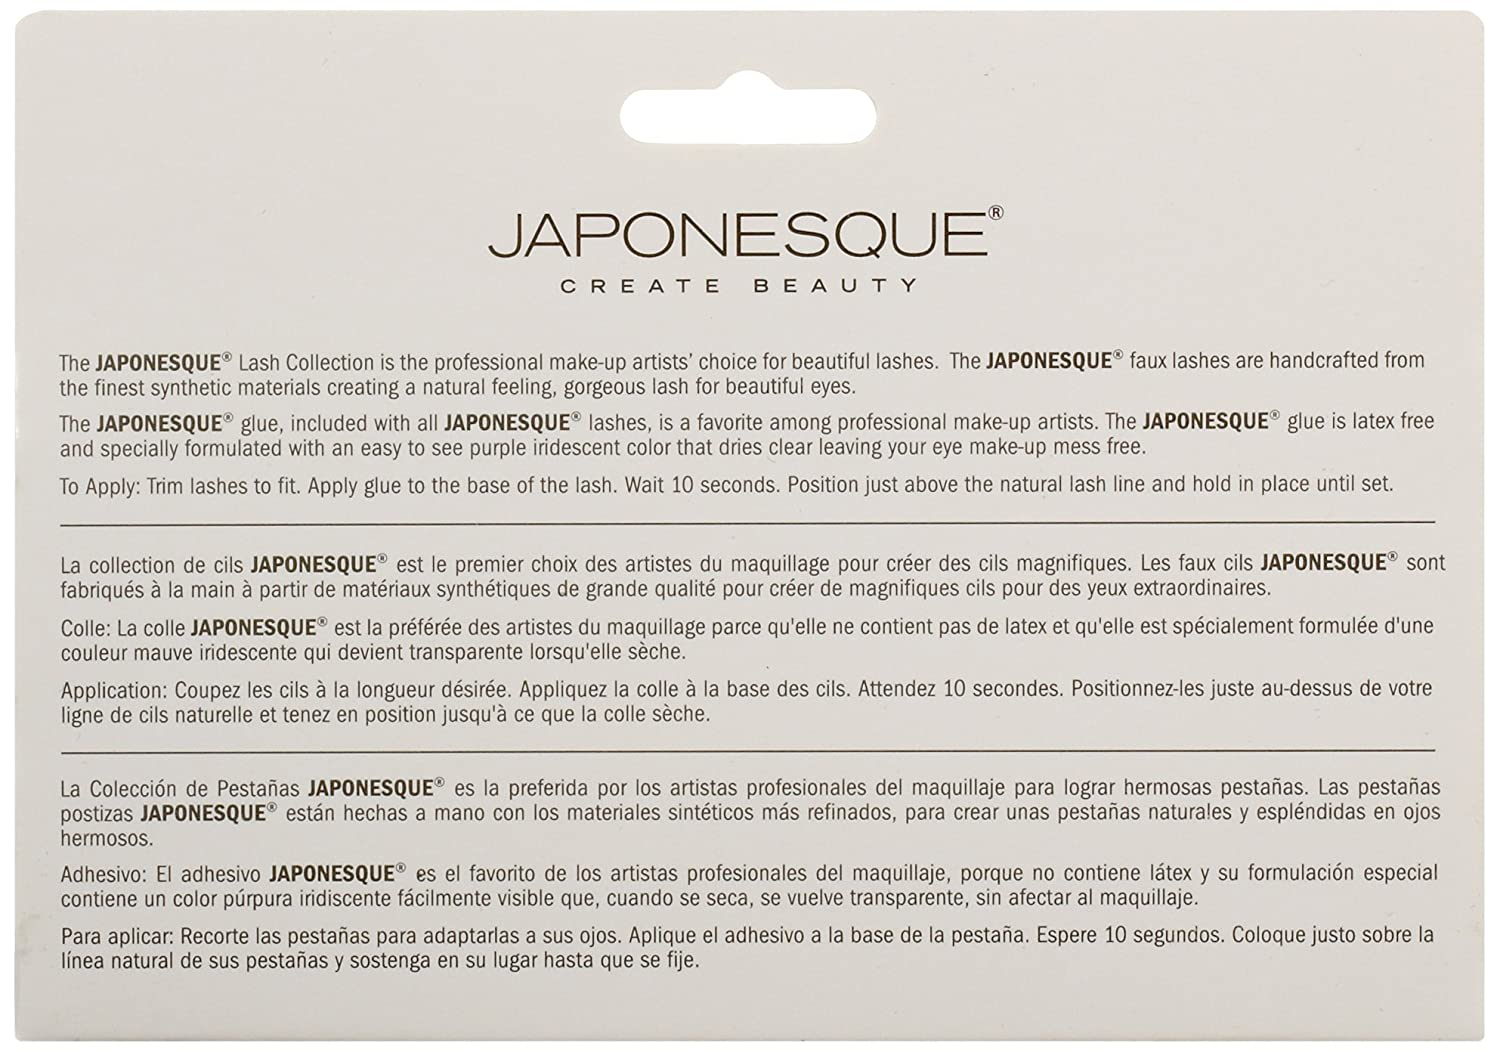 amazon com japonesque extra flair eyelashes luxury beauty